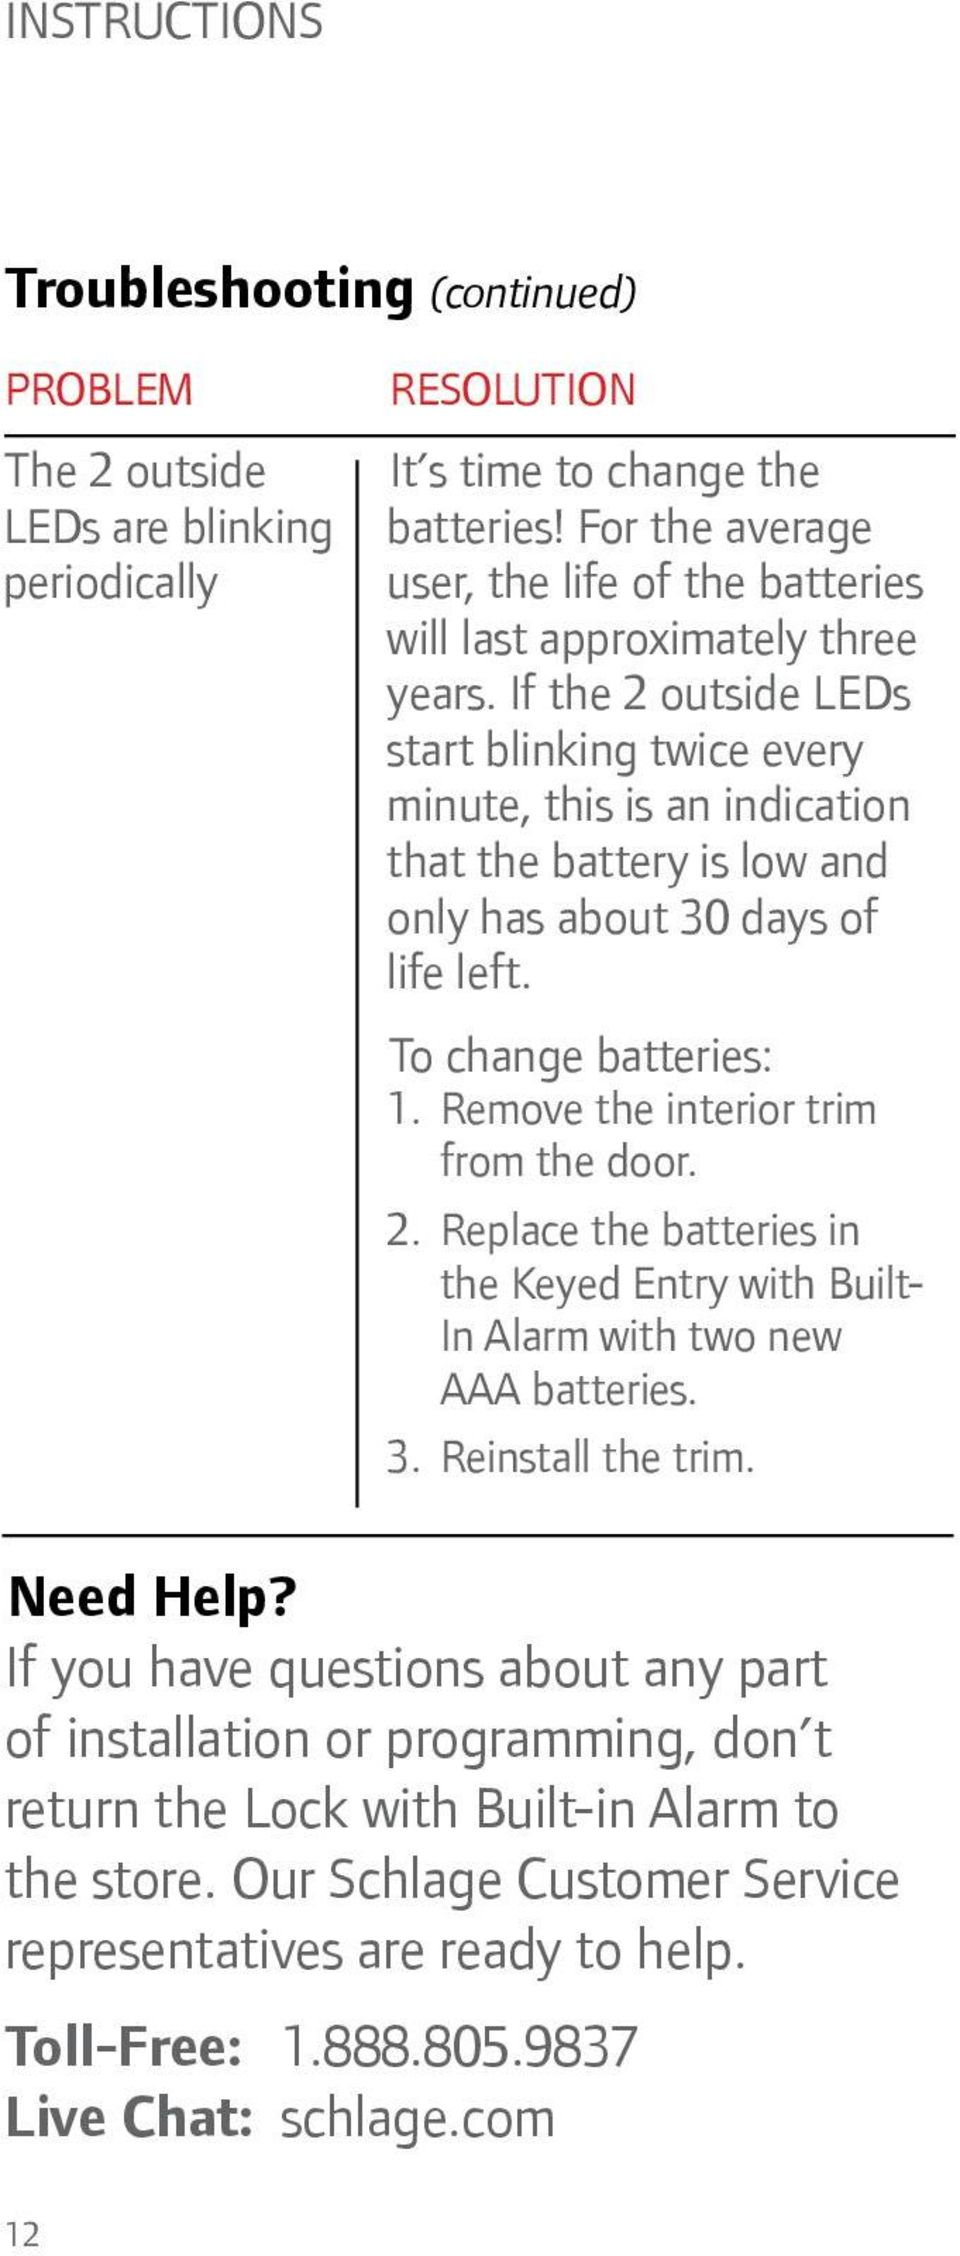 If the 2 outside LEDs start blinking twice every minute, this is an indication that the battery is low and only has about 30 days of life left. To change batteries: 1.